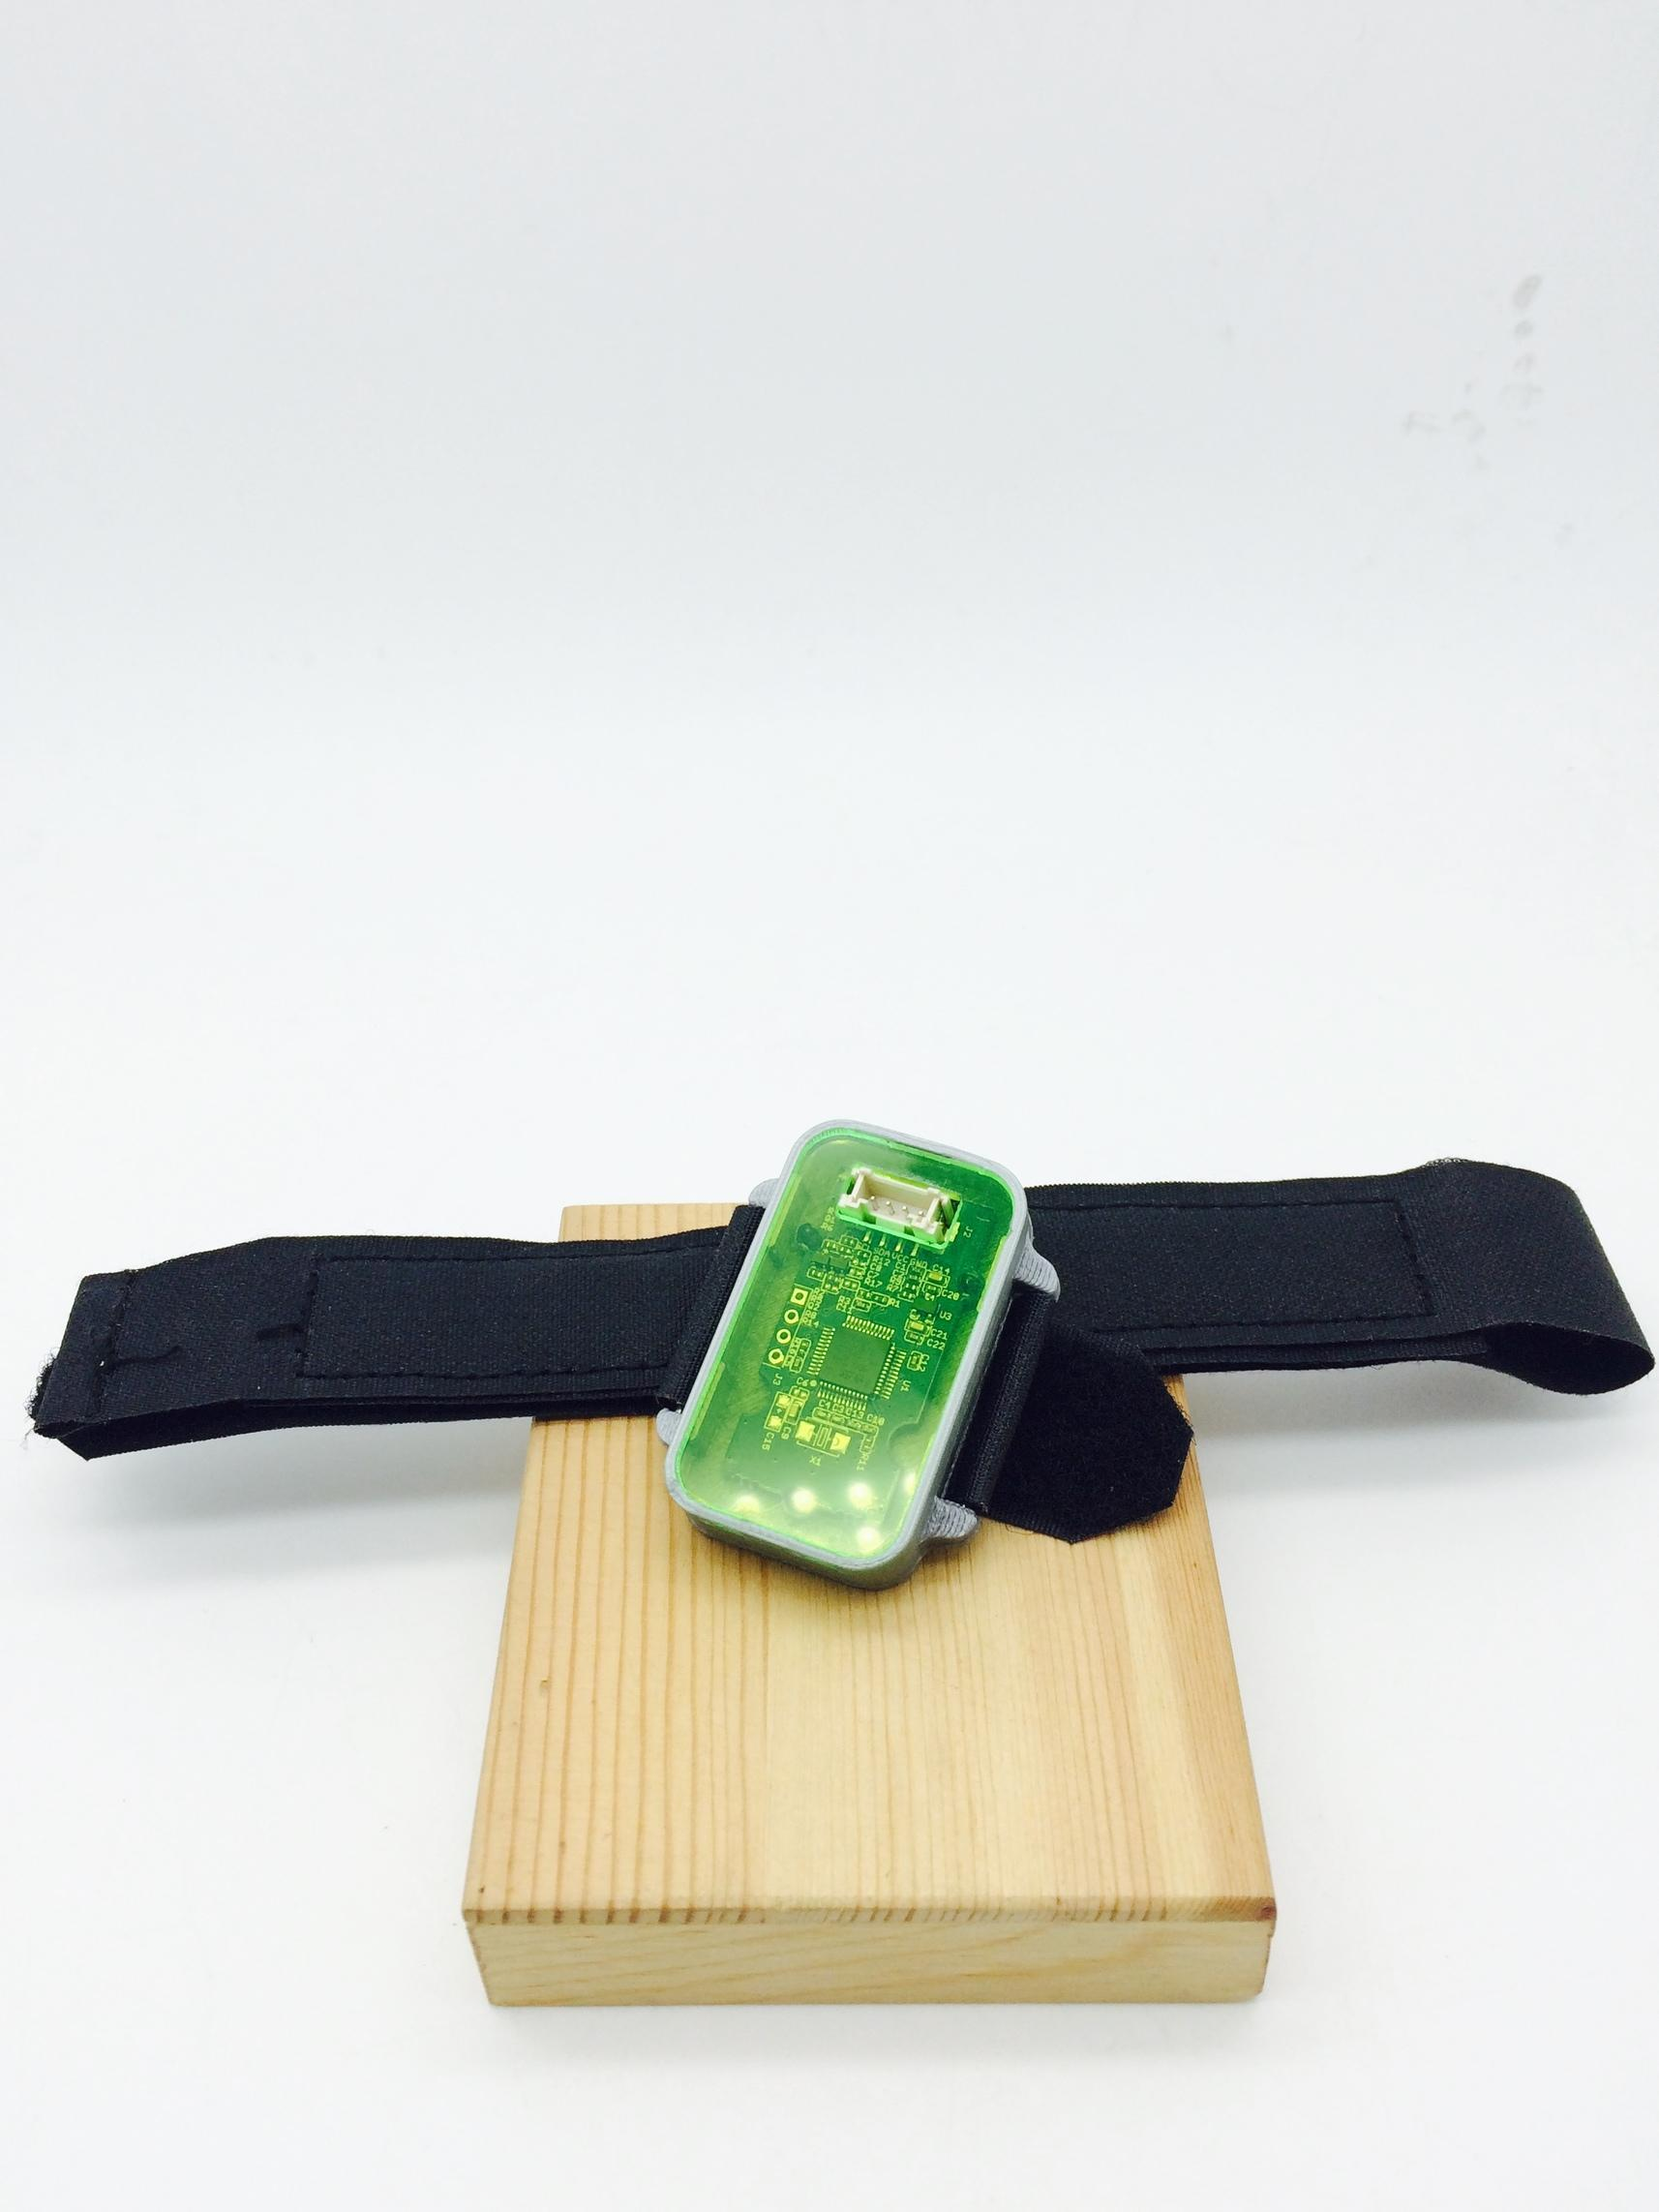 Grove Finger-clip Heart Rate Sensor with shell